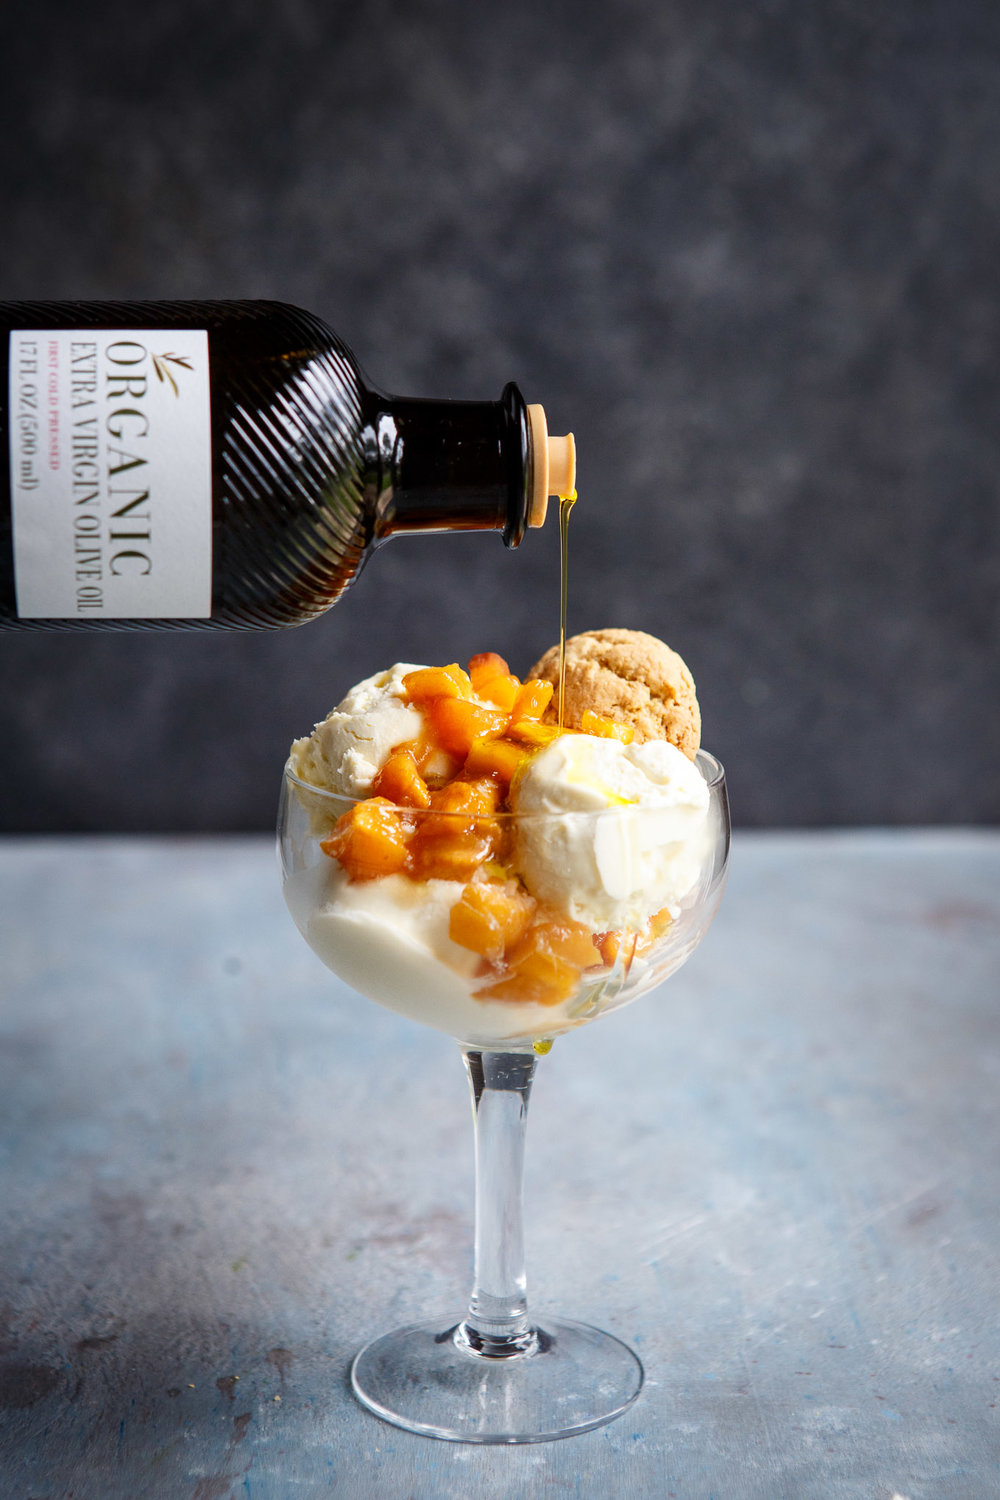 In partnership with Carapelli® Organic Extra Virgin Olive Oil |   No Churn Olive Oil Ice Cream with Roasted Peaches